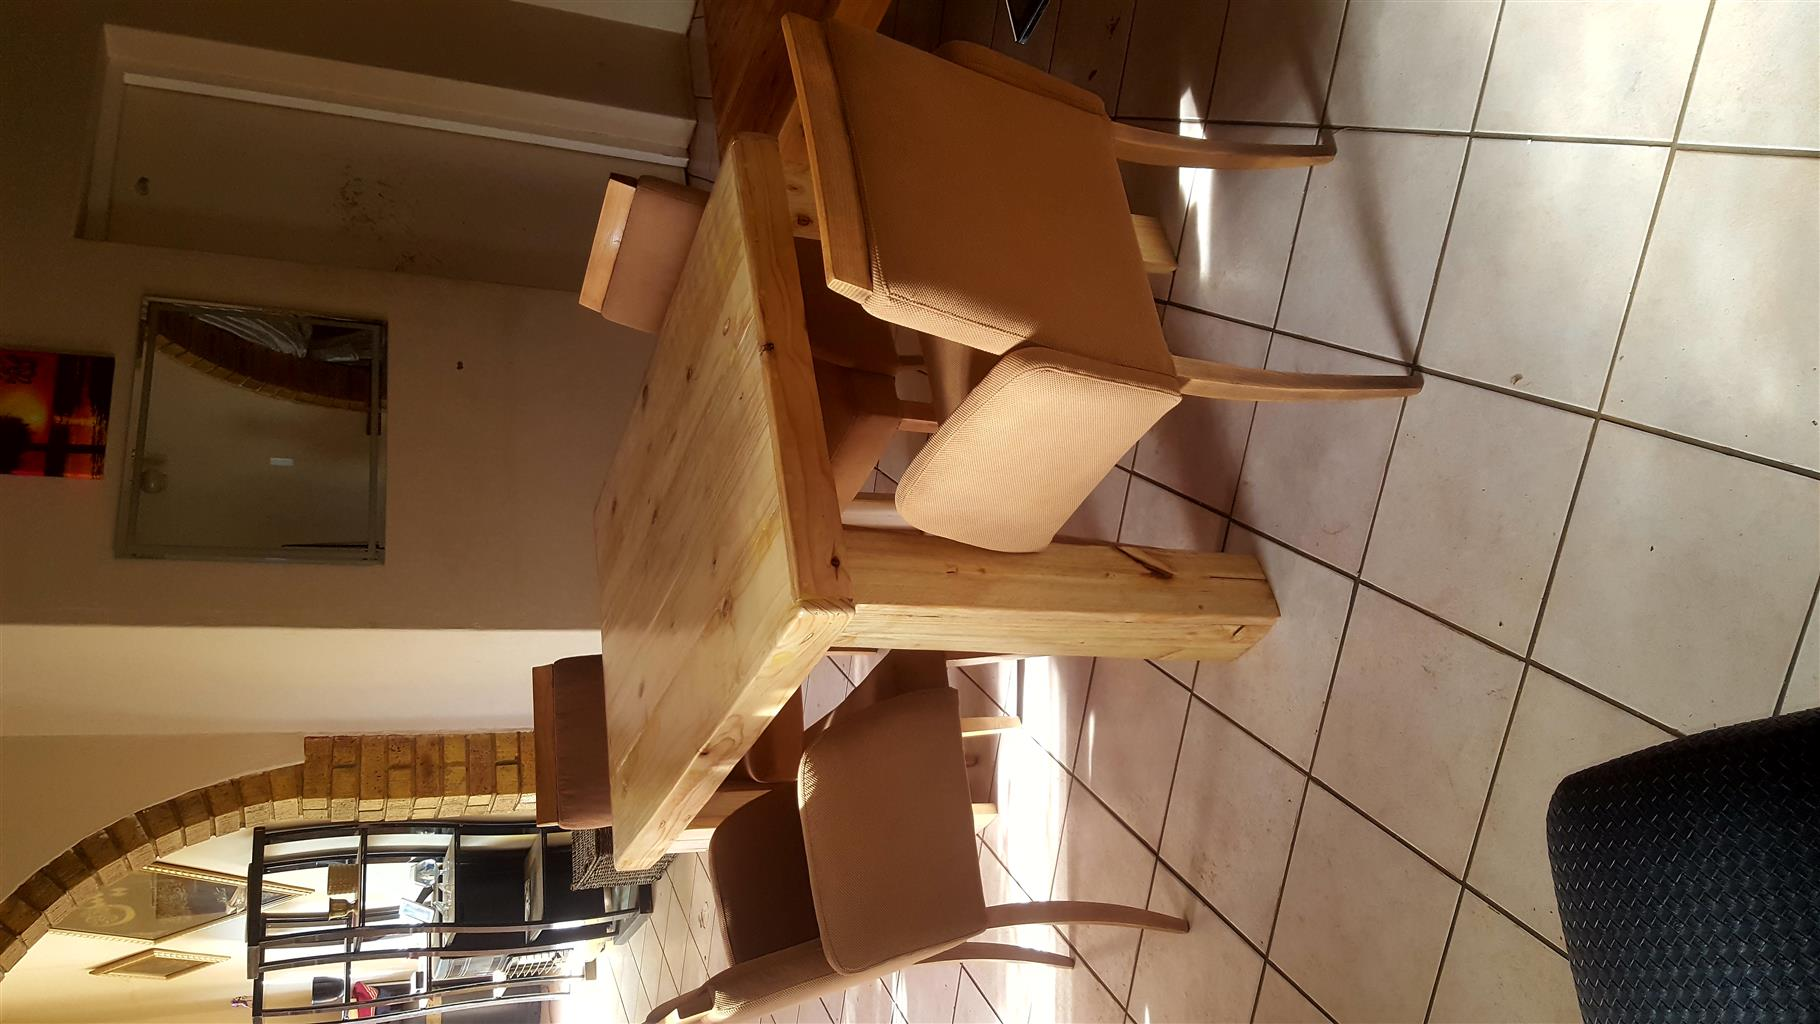 used dining room table for sale | 5pc Oak dining room table and chairs for sale | Junk Mail